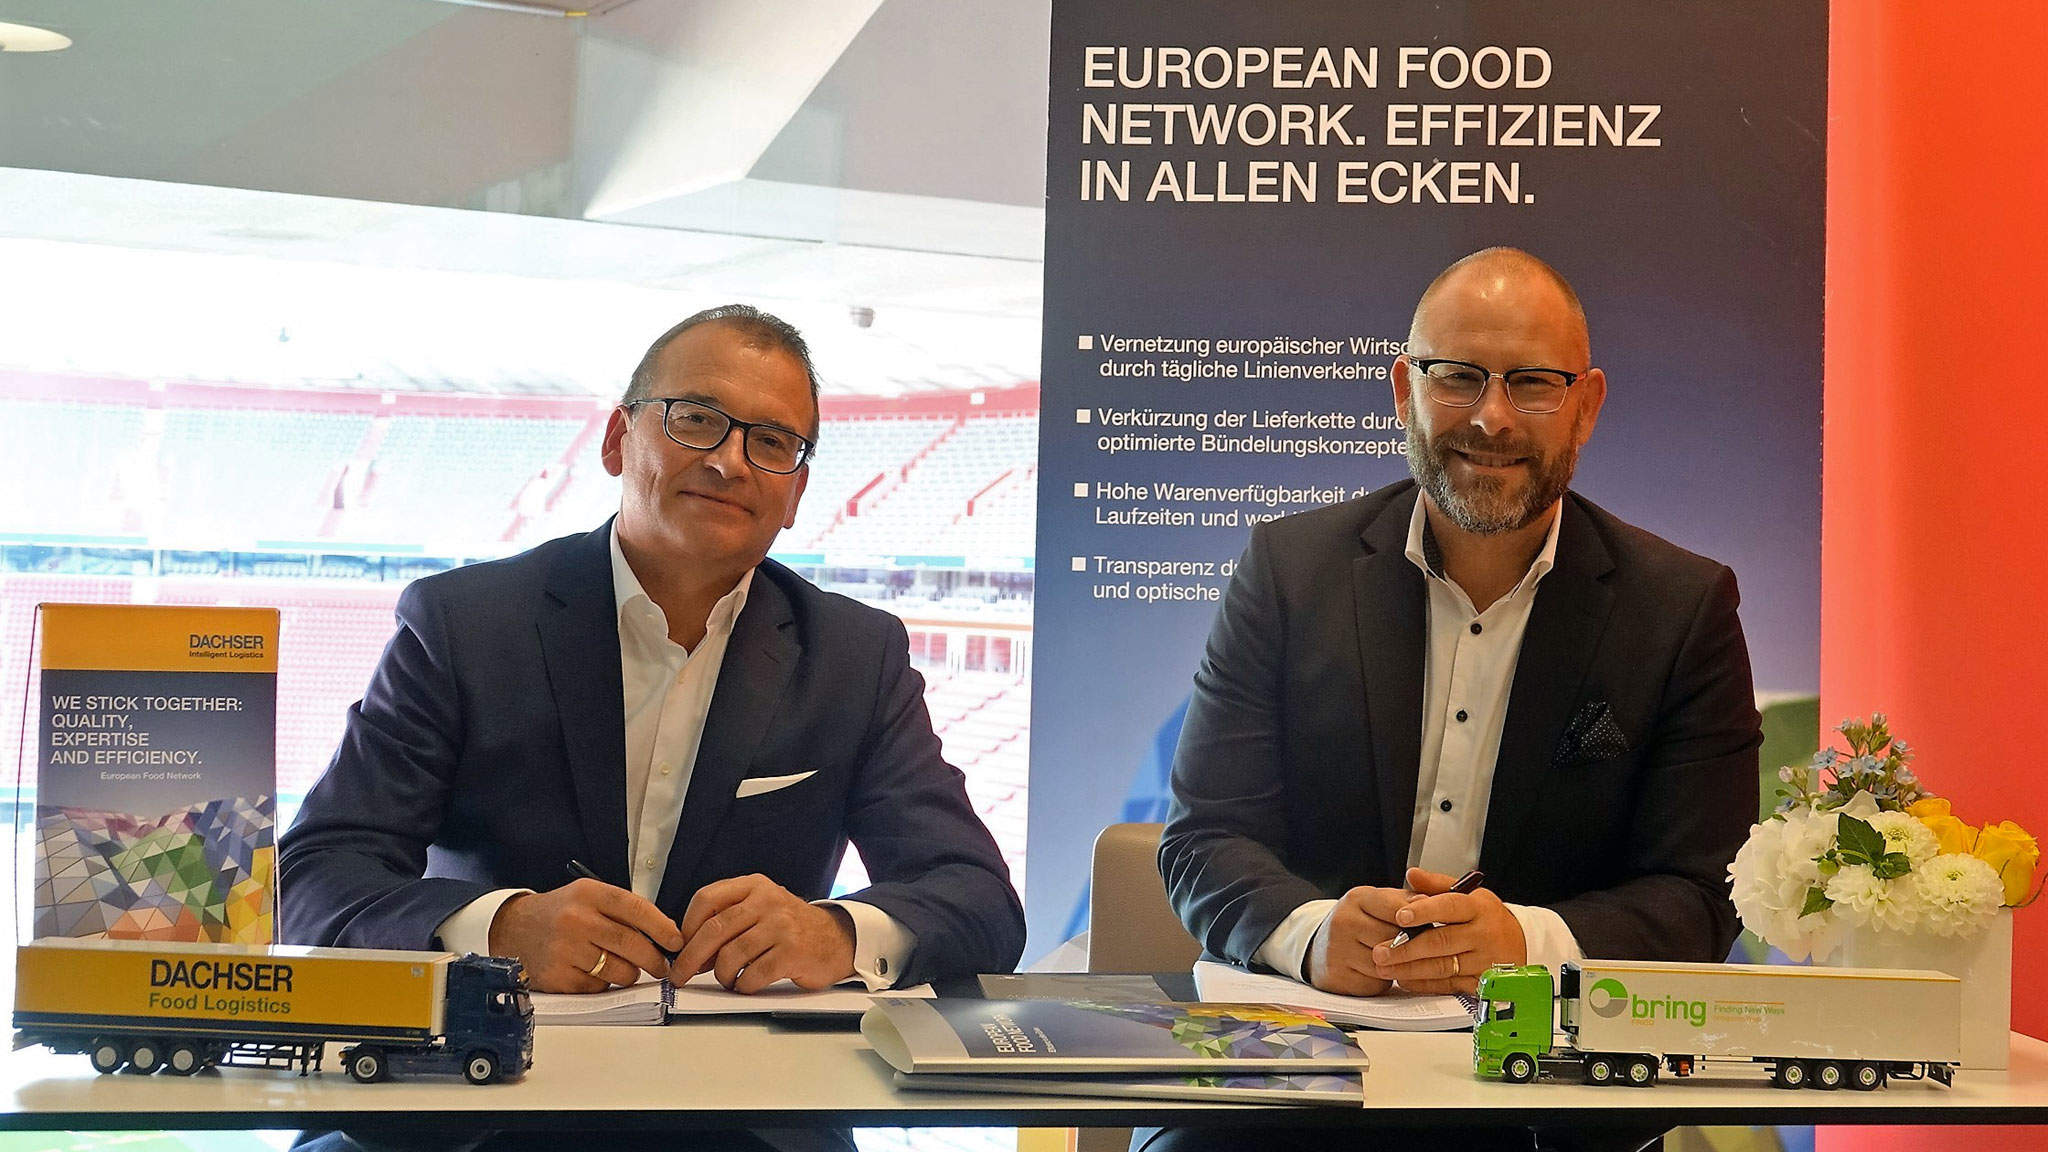 from left to right: Alfred Miller, Managing Director DACHSER Food Logistics and Peter Haveneth, Managing Director Bring Frigo AB.